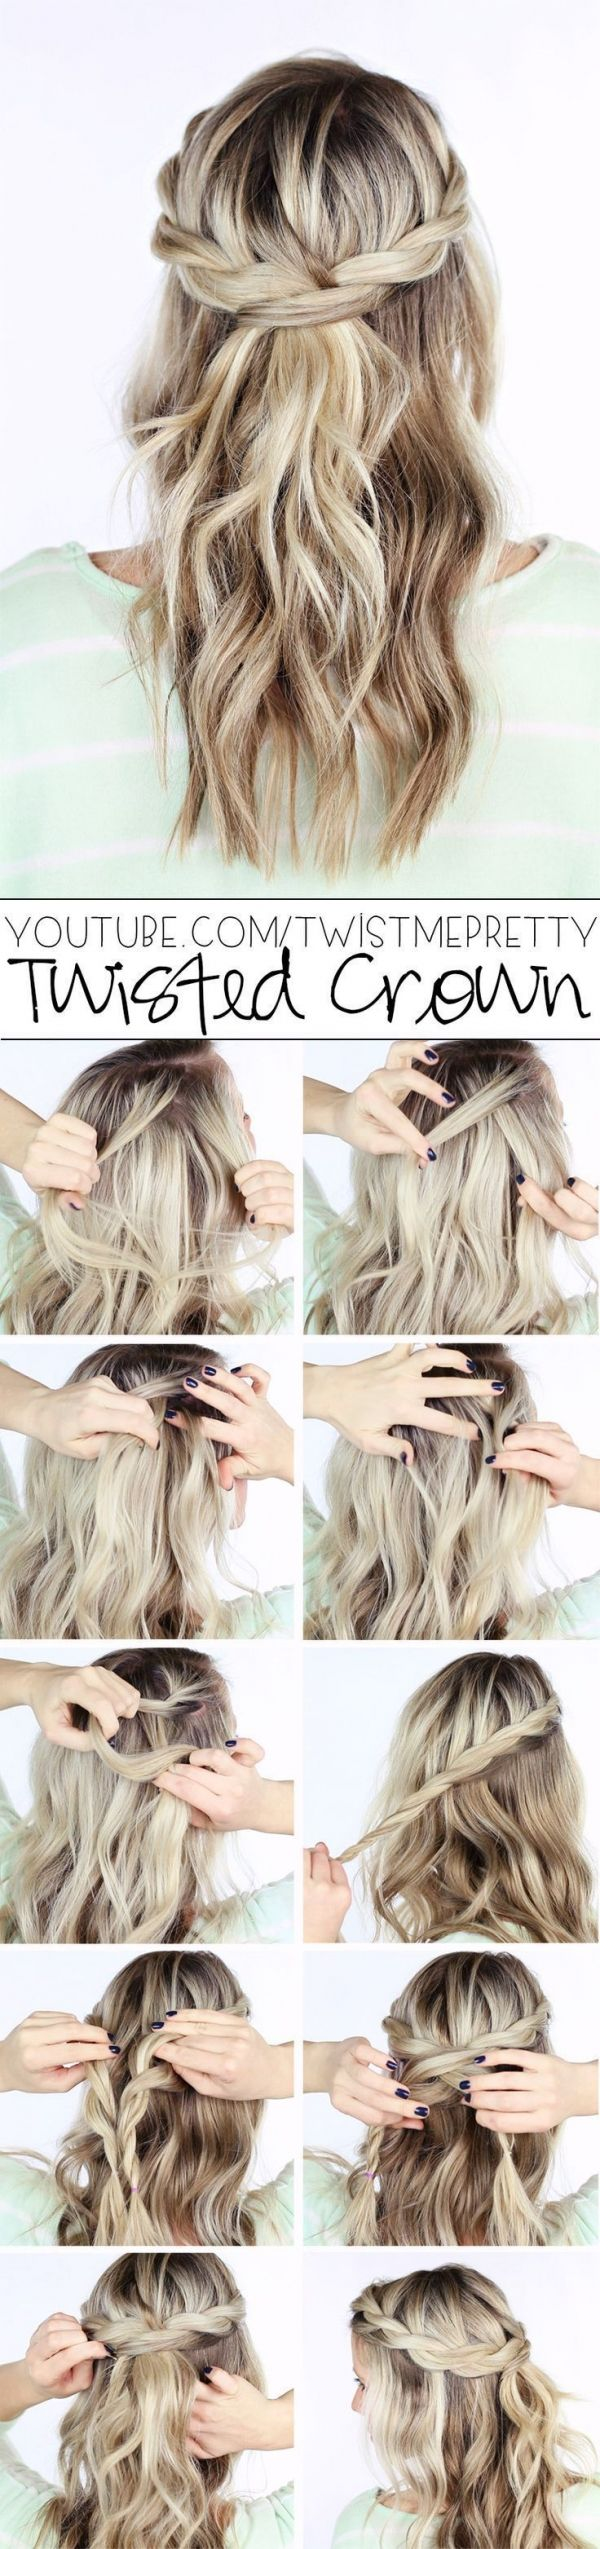 20 Fabulous Half Up Half Down Hairstyles for 2016 (Photo Tutorials)